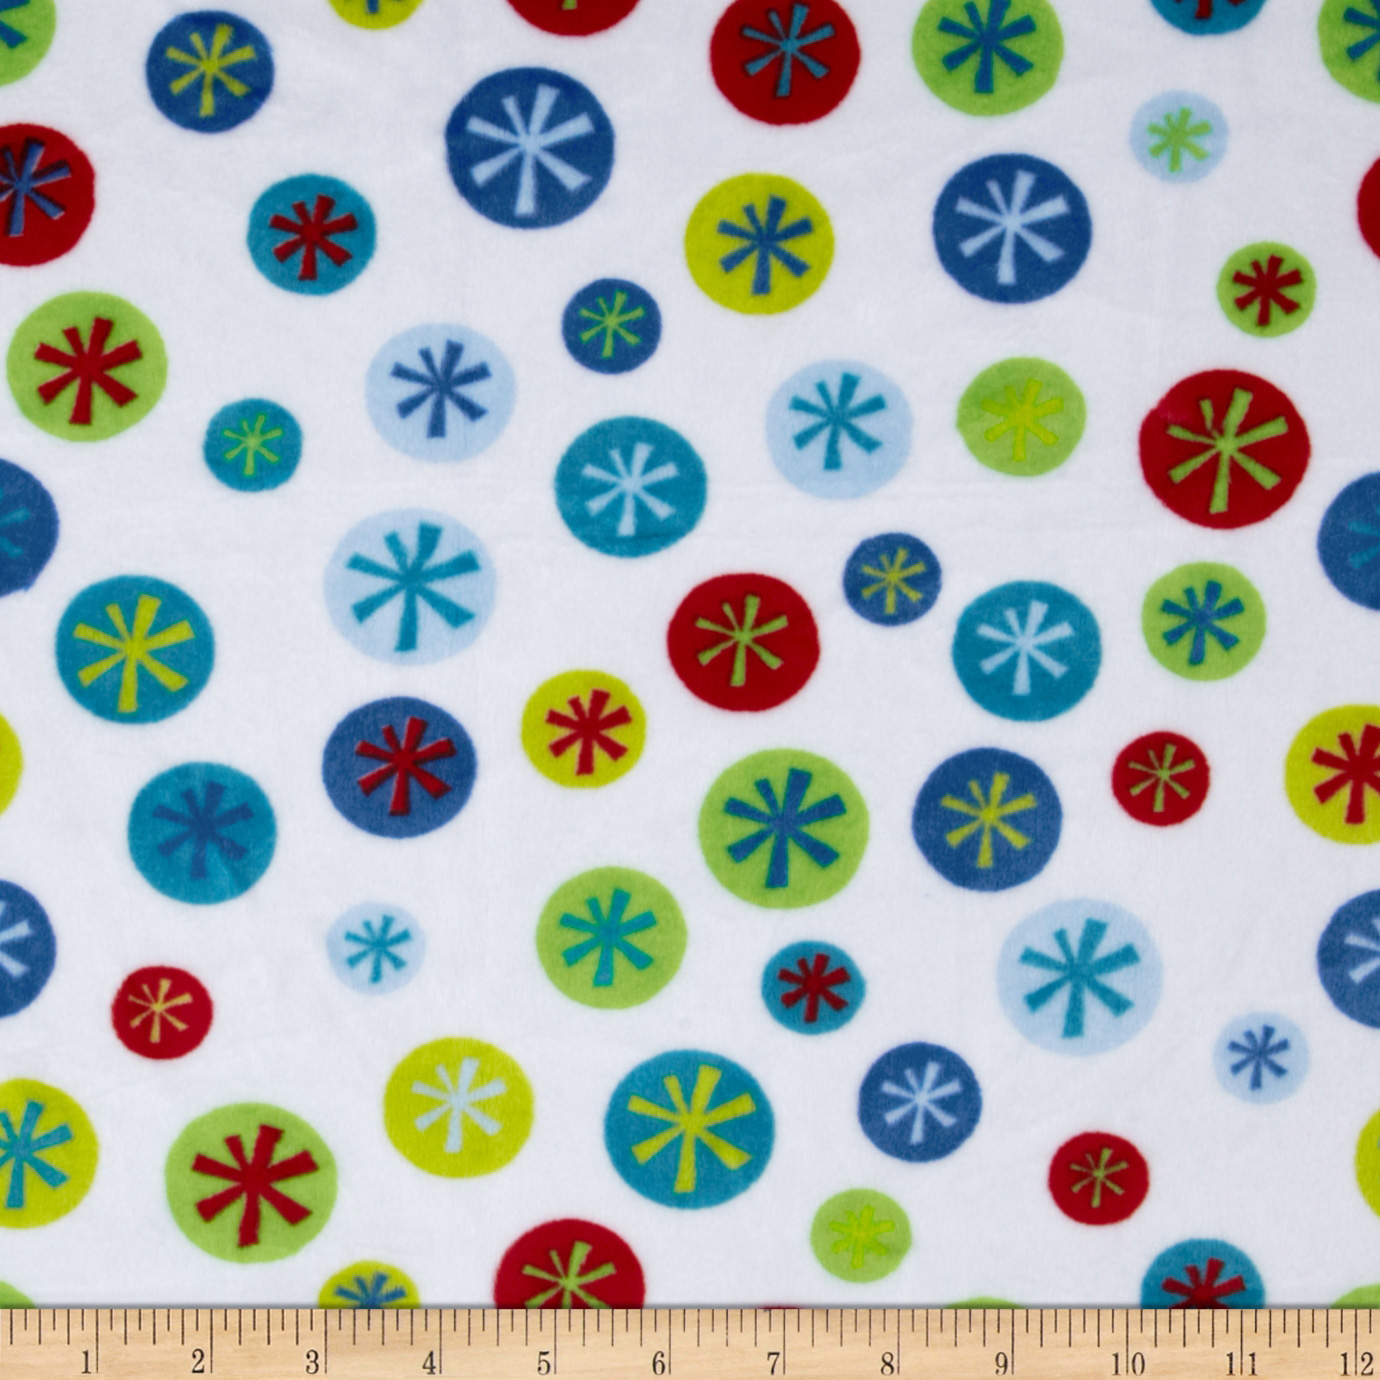 Minky Cuddle Snowflake Snow Fabric